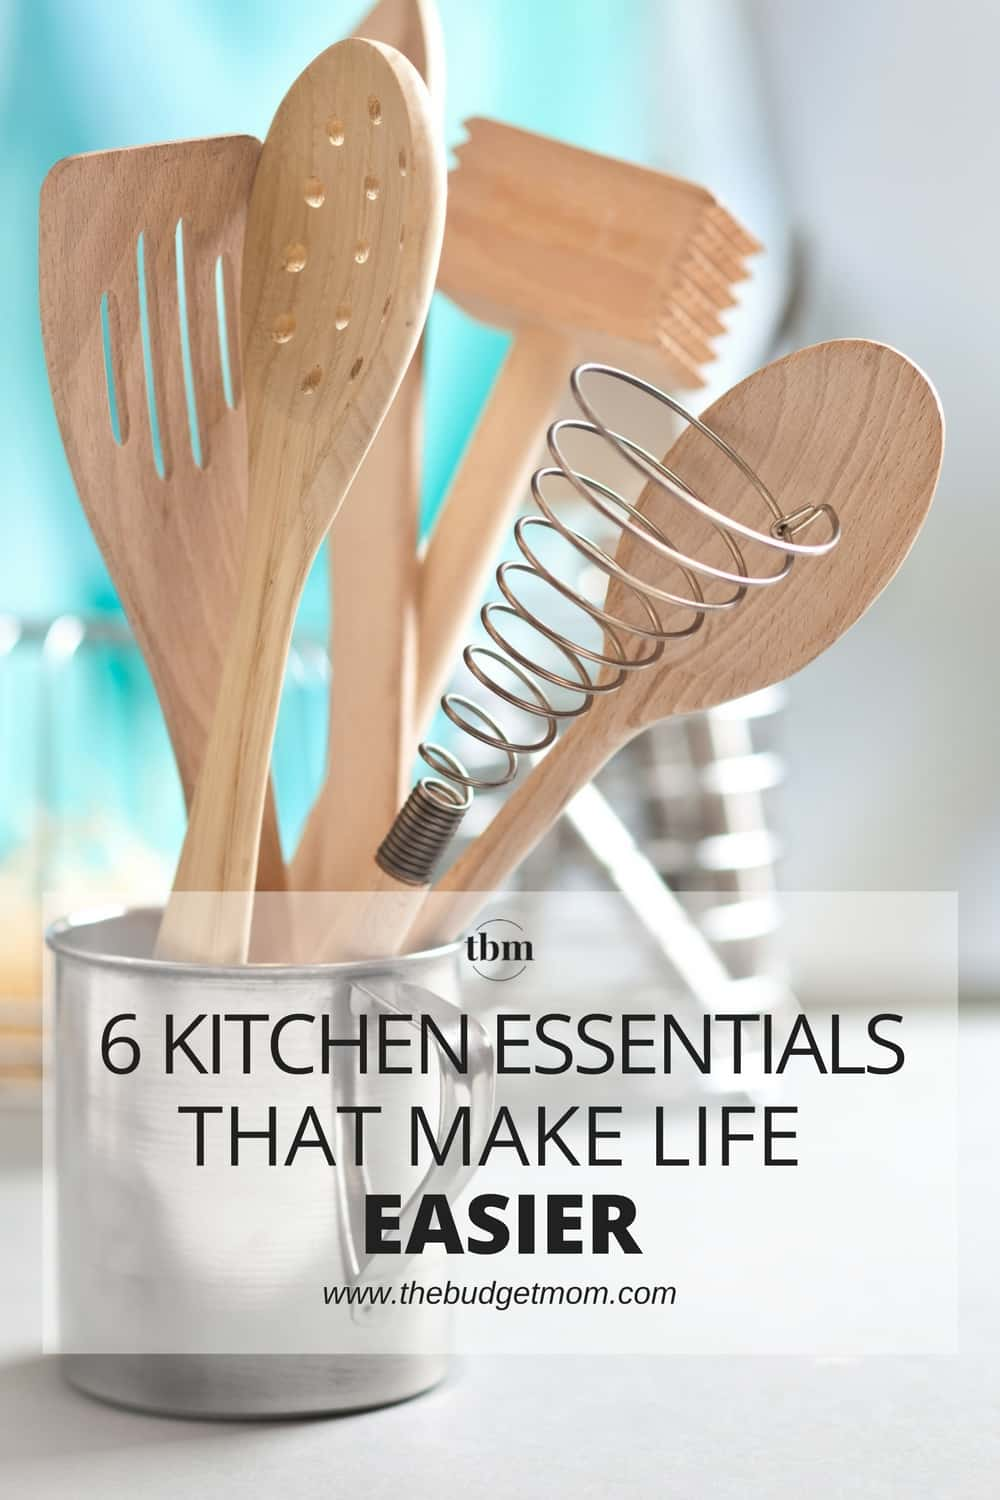 Whether you're an expert chef or a beginner home cook, we all want to save more time in the kitchen. This doesn't always mean searching high and low for 30-minute meals or focusing on prepping the night before. Here are 6 essentials for a beautifully functioning kitchen that will save you time.